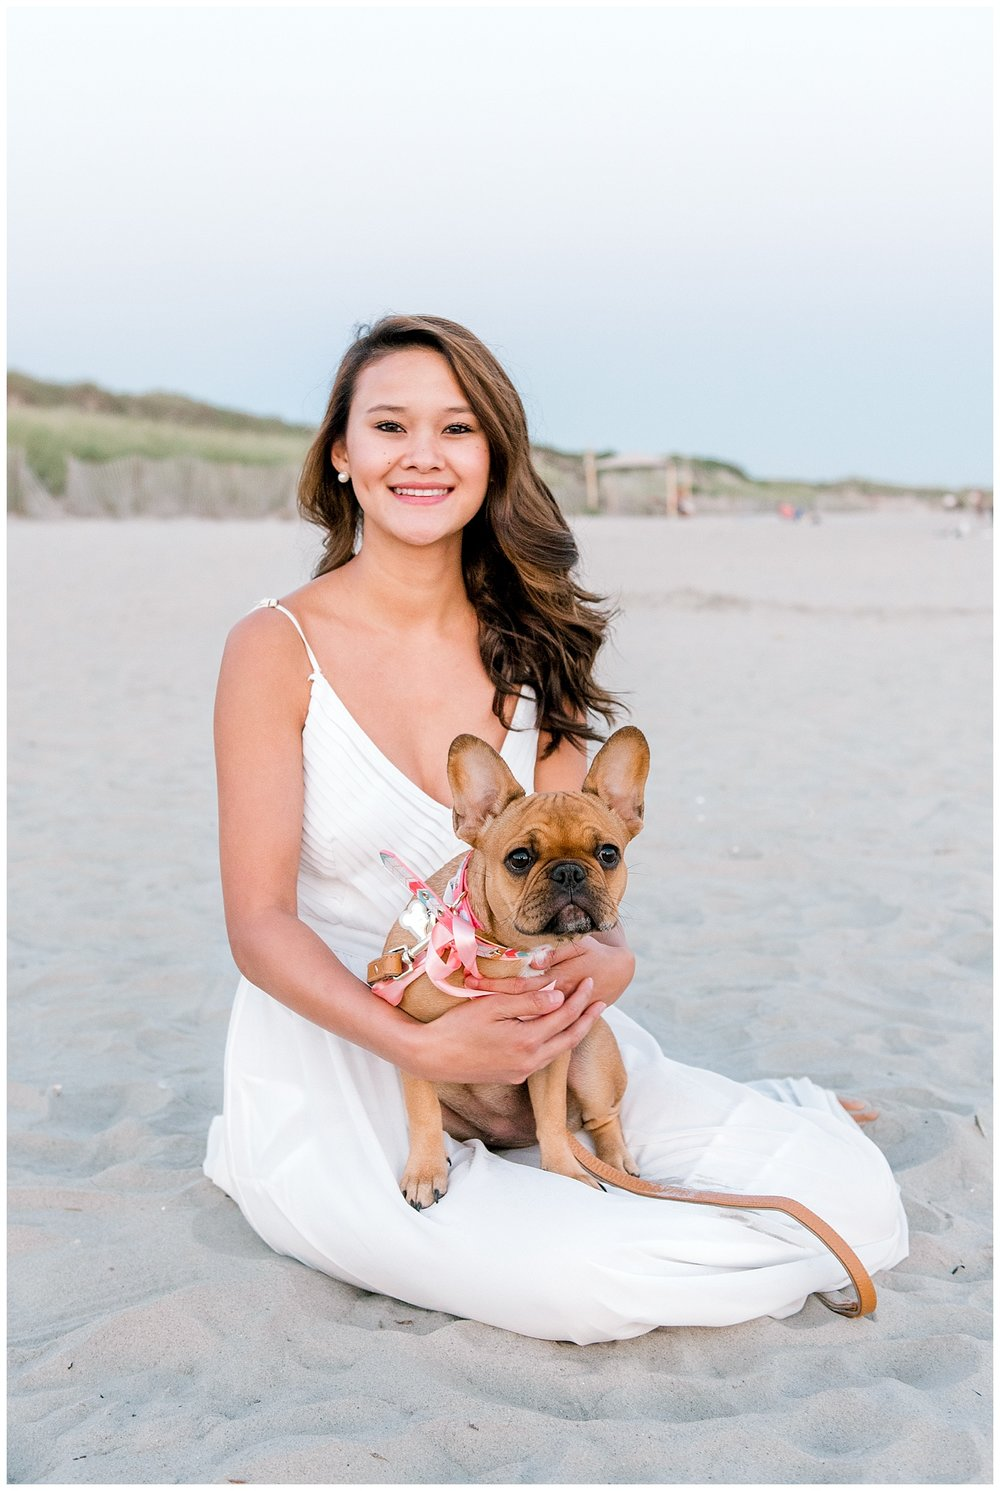 august18-rhode-island-engagement-photography-field-couples-portraits-beach-frenchie-puppy-9.jpg